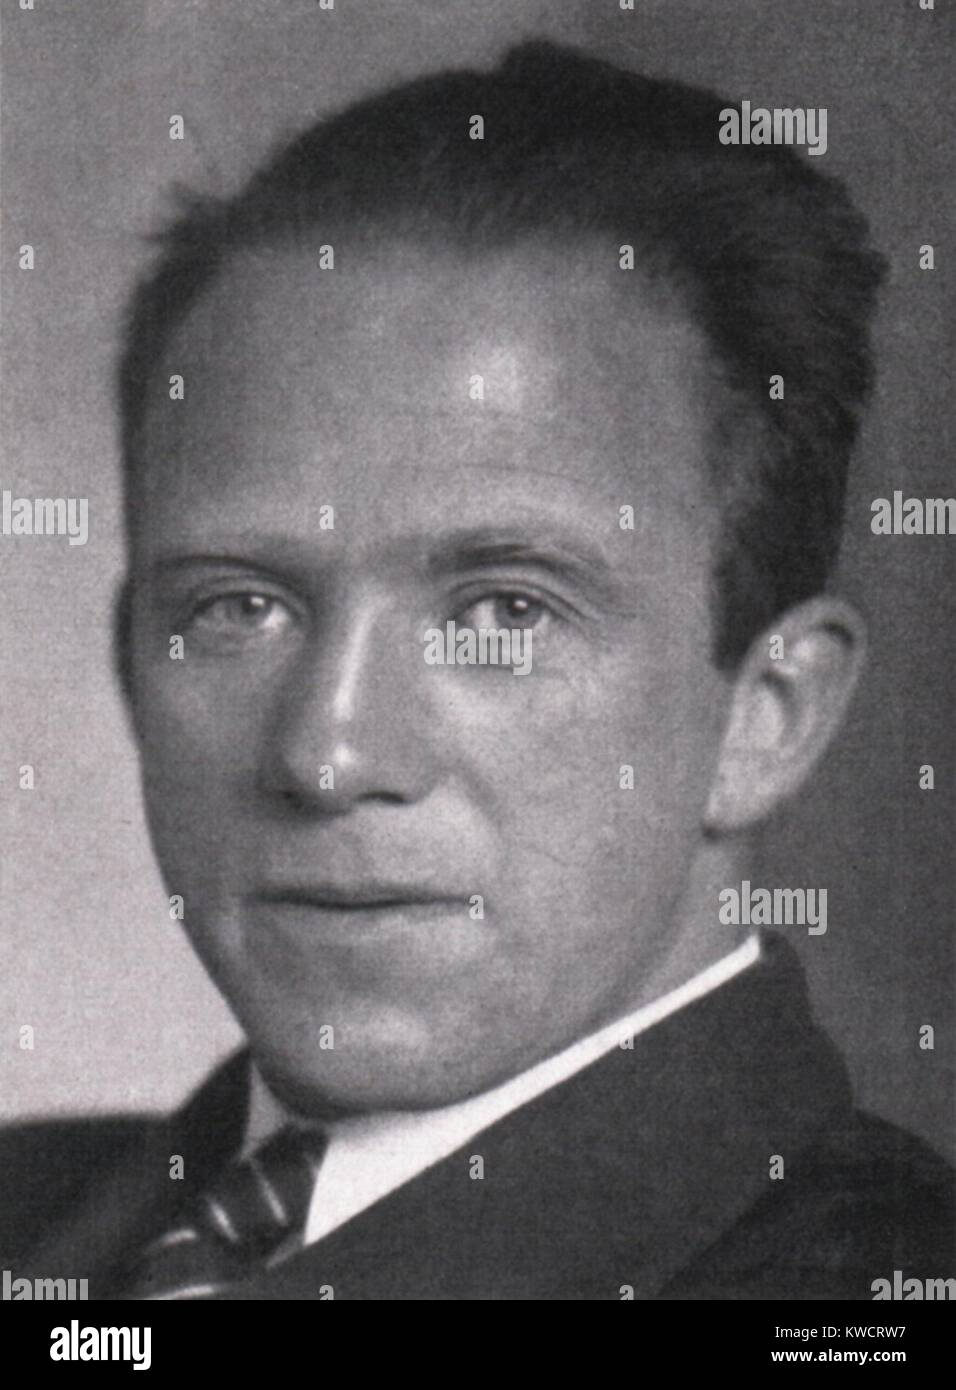 werner heisenberg theoretical physicist was awarded the 1932 nobel